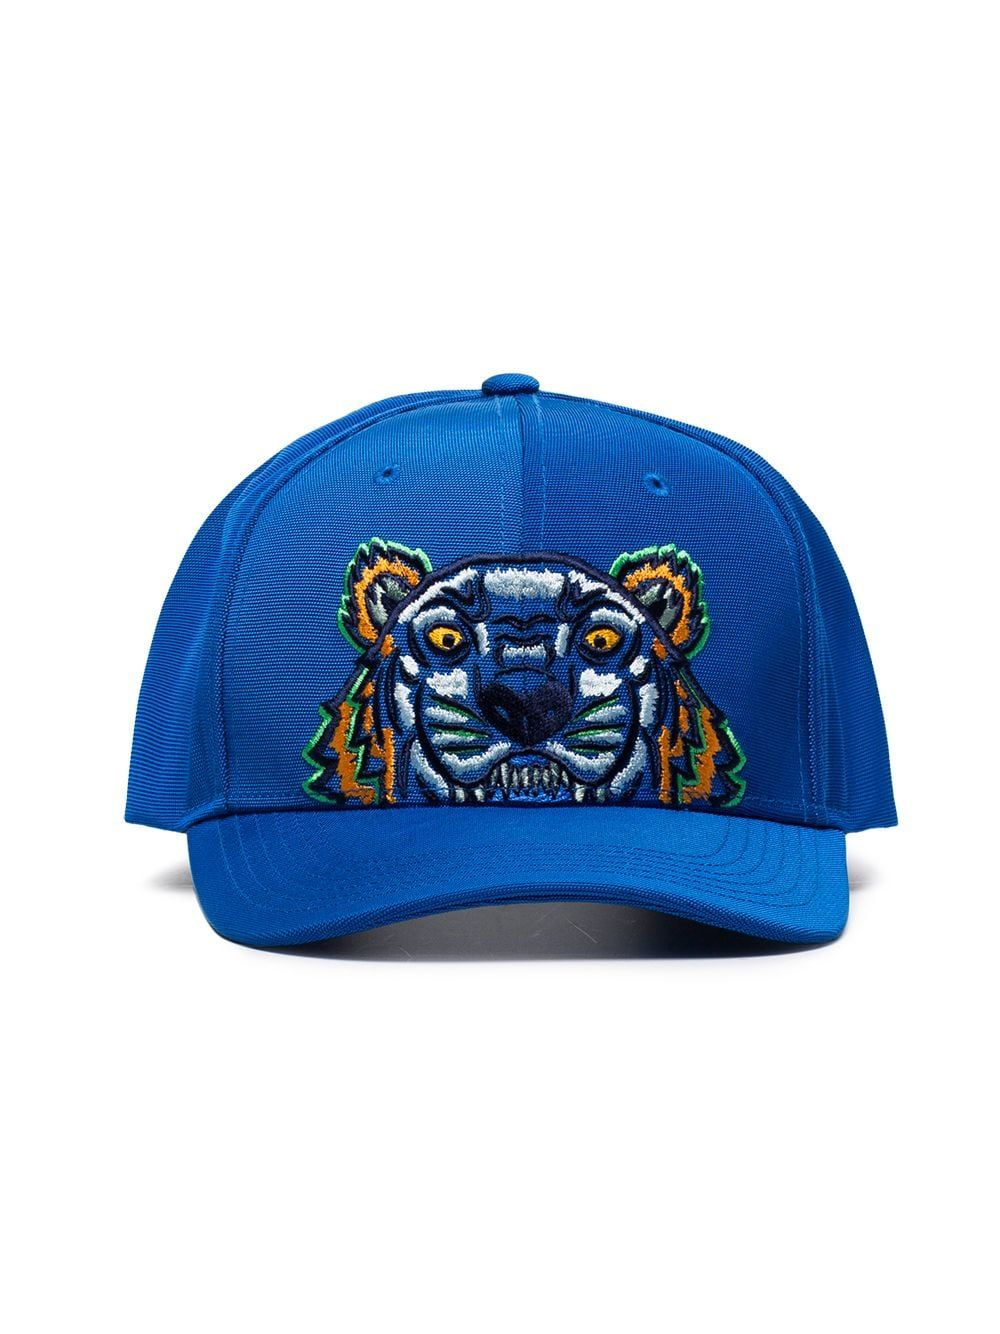 f9a2686c6 Kenzo Tiger embroidered logo cap - Blue | Products in 2019 | Kenzo ...